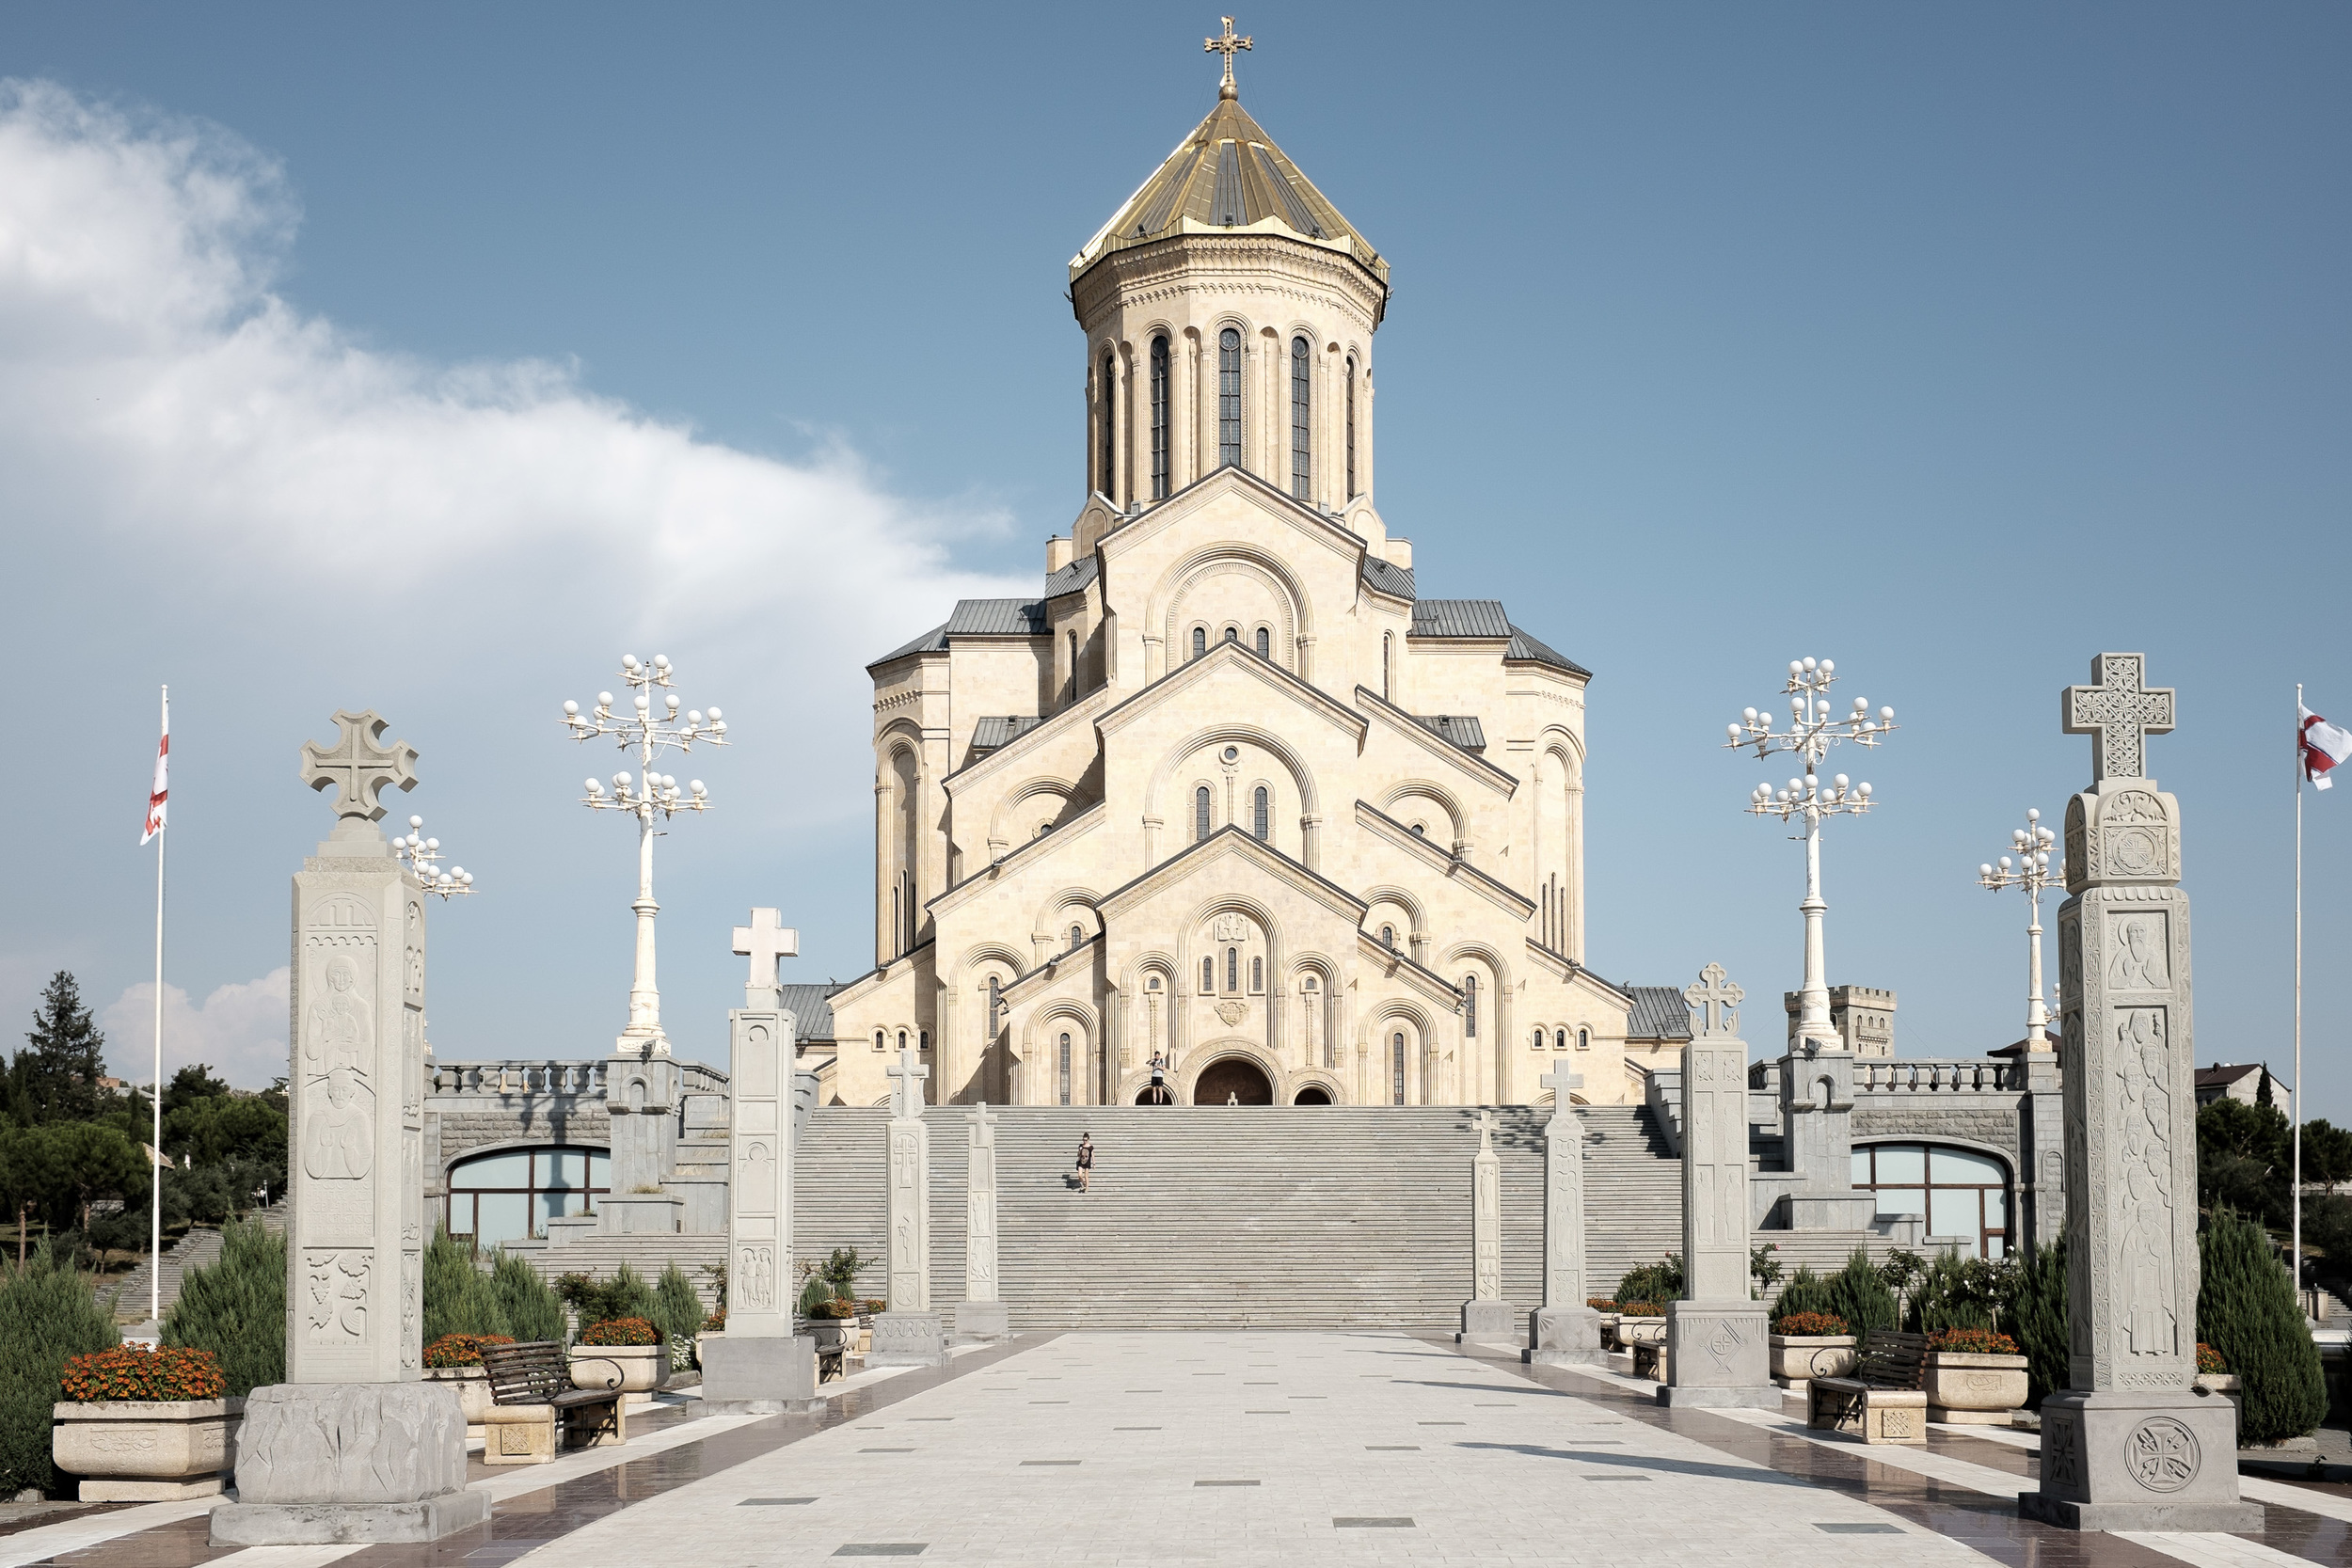 No photos from Vladikavkaz to Tbilisi (Georgia) though the road through the mountains of Caucasus is more than beautiful. This is the Saint Trinity church.